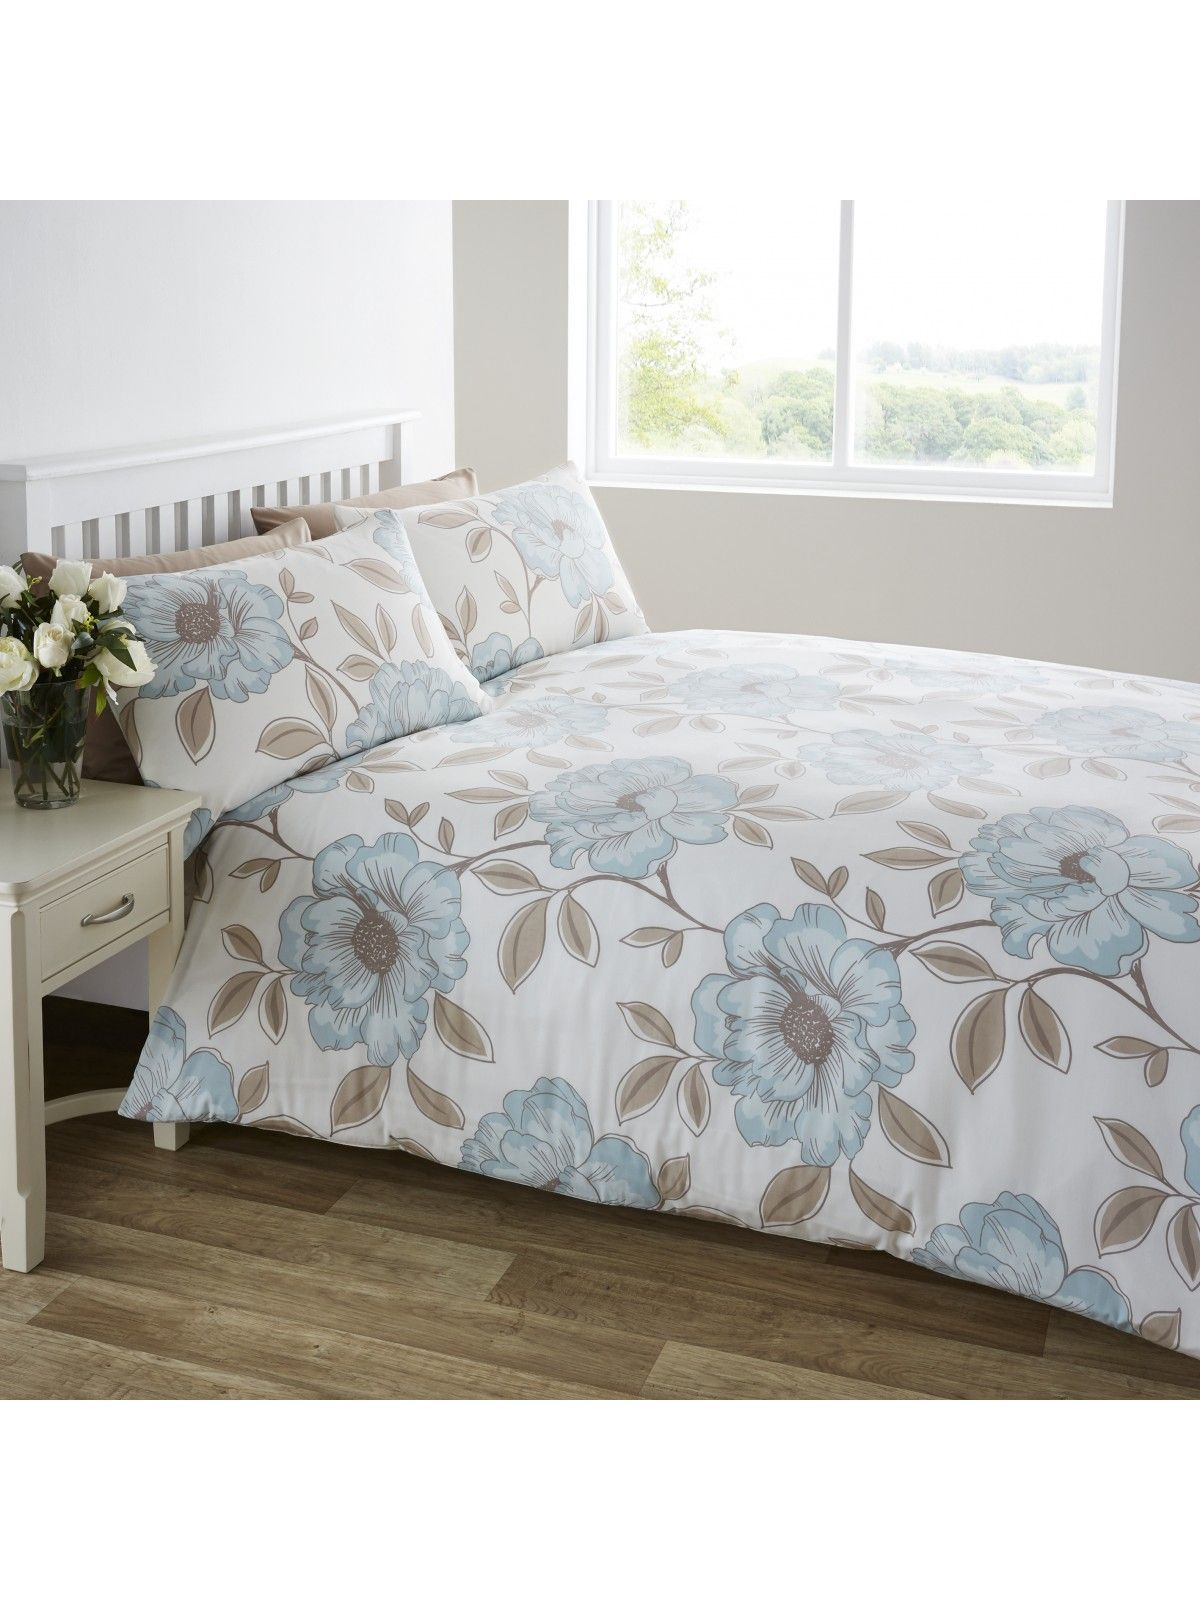 Add Clical Elegance To Your Home With Our Ponden Range The Duck Egg Poppy Duvet Set Has An Eye Cat